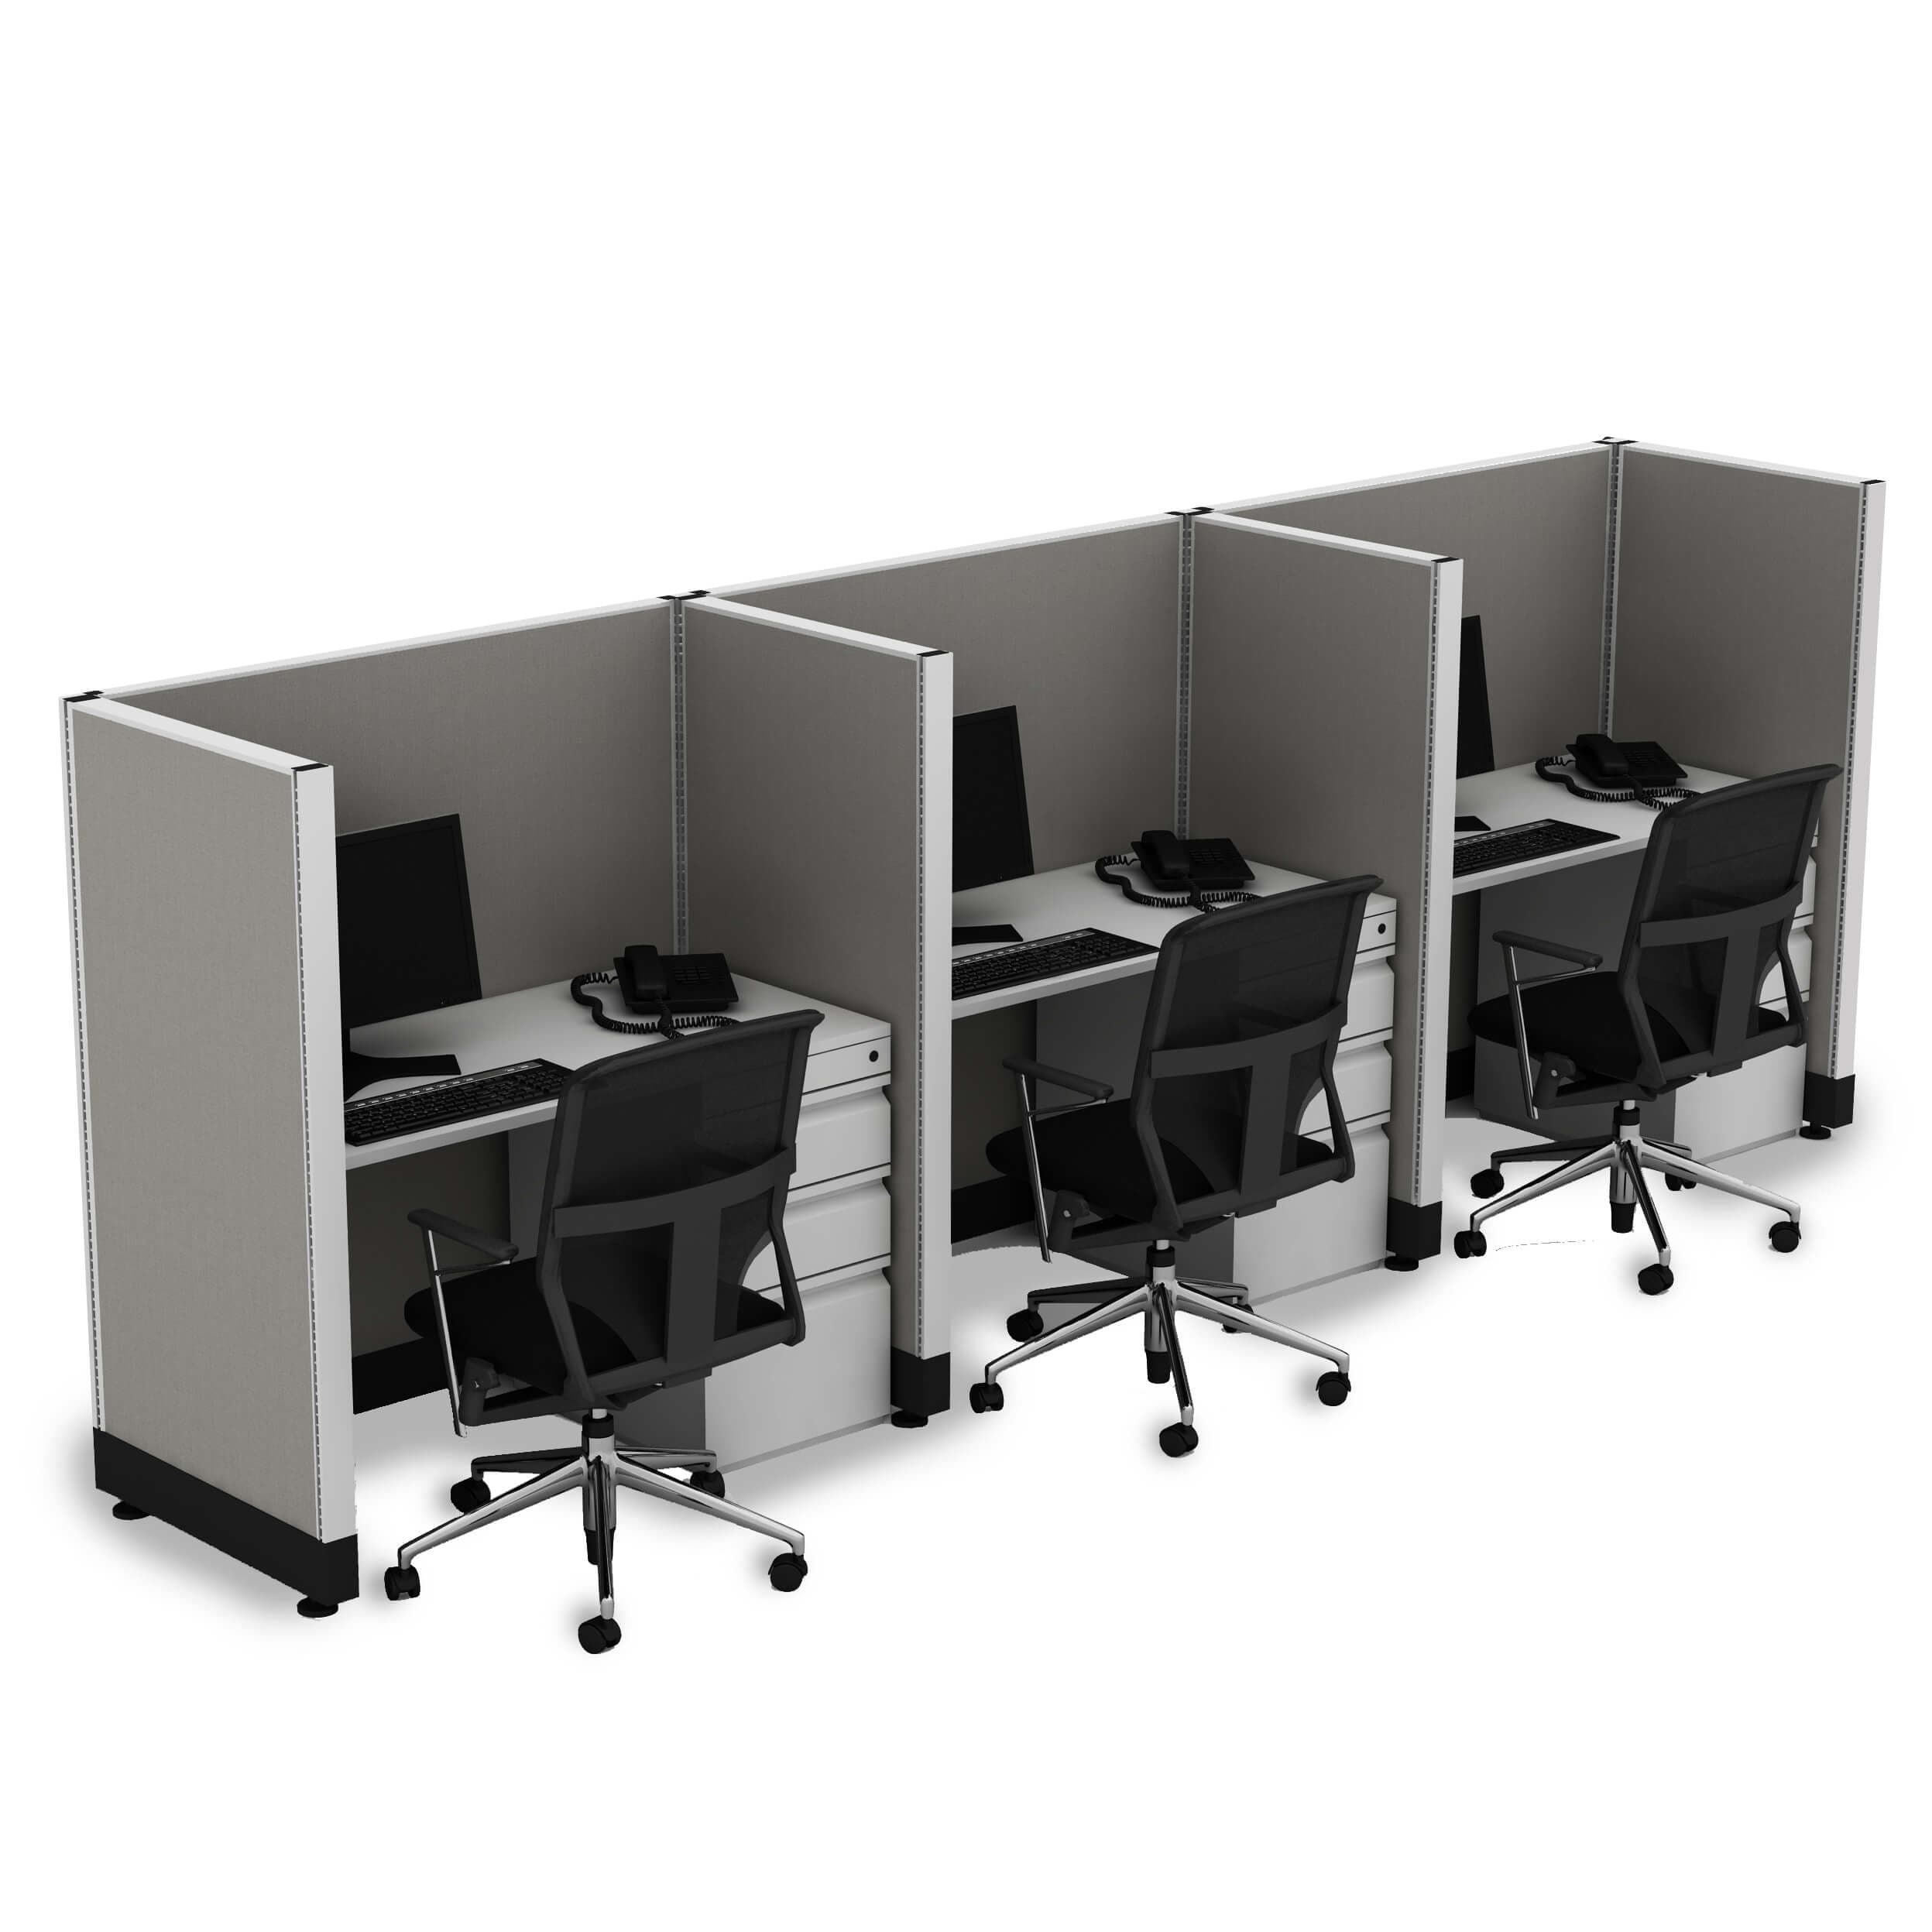 Office Cubicle Desk 53H 3pack Inline Unpowered (2x3 - White Desk White Paint - Assembled)